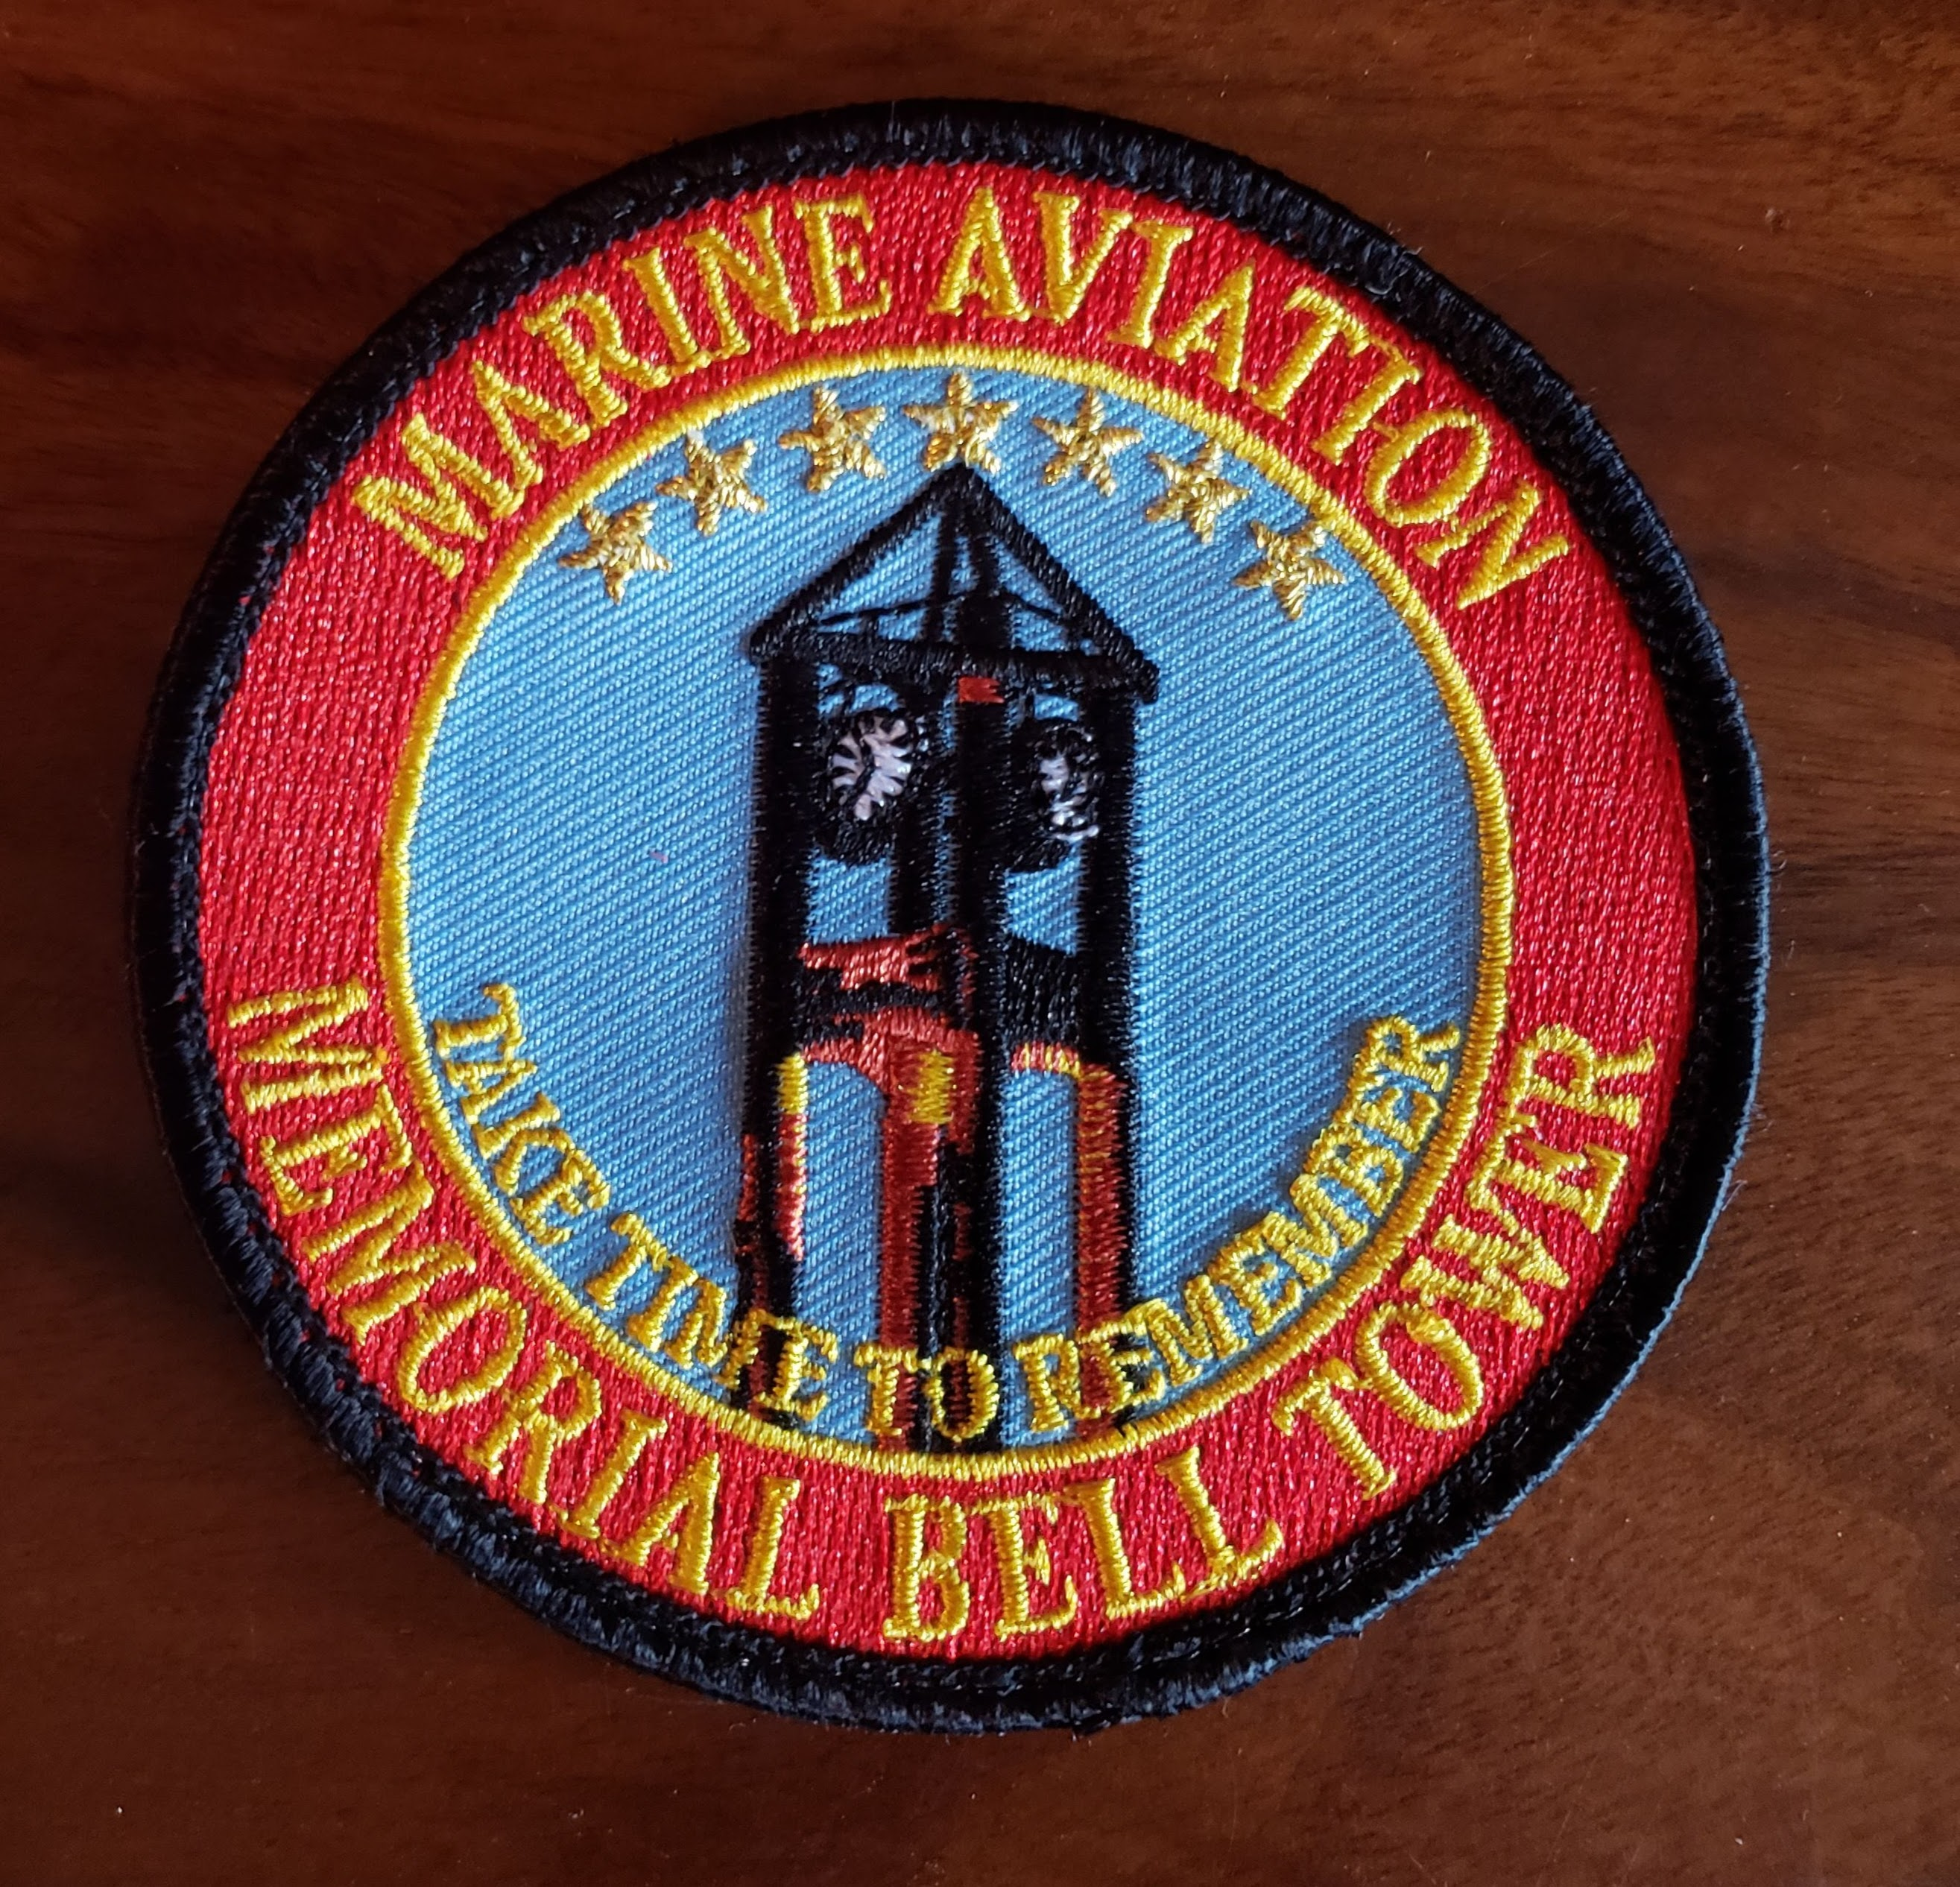 Marine Aviation Bell Tower Memorial Patch